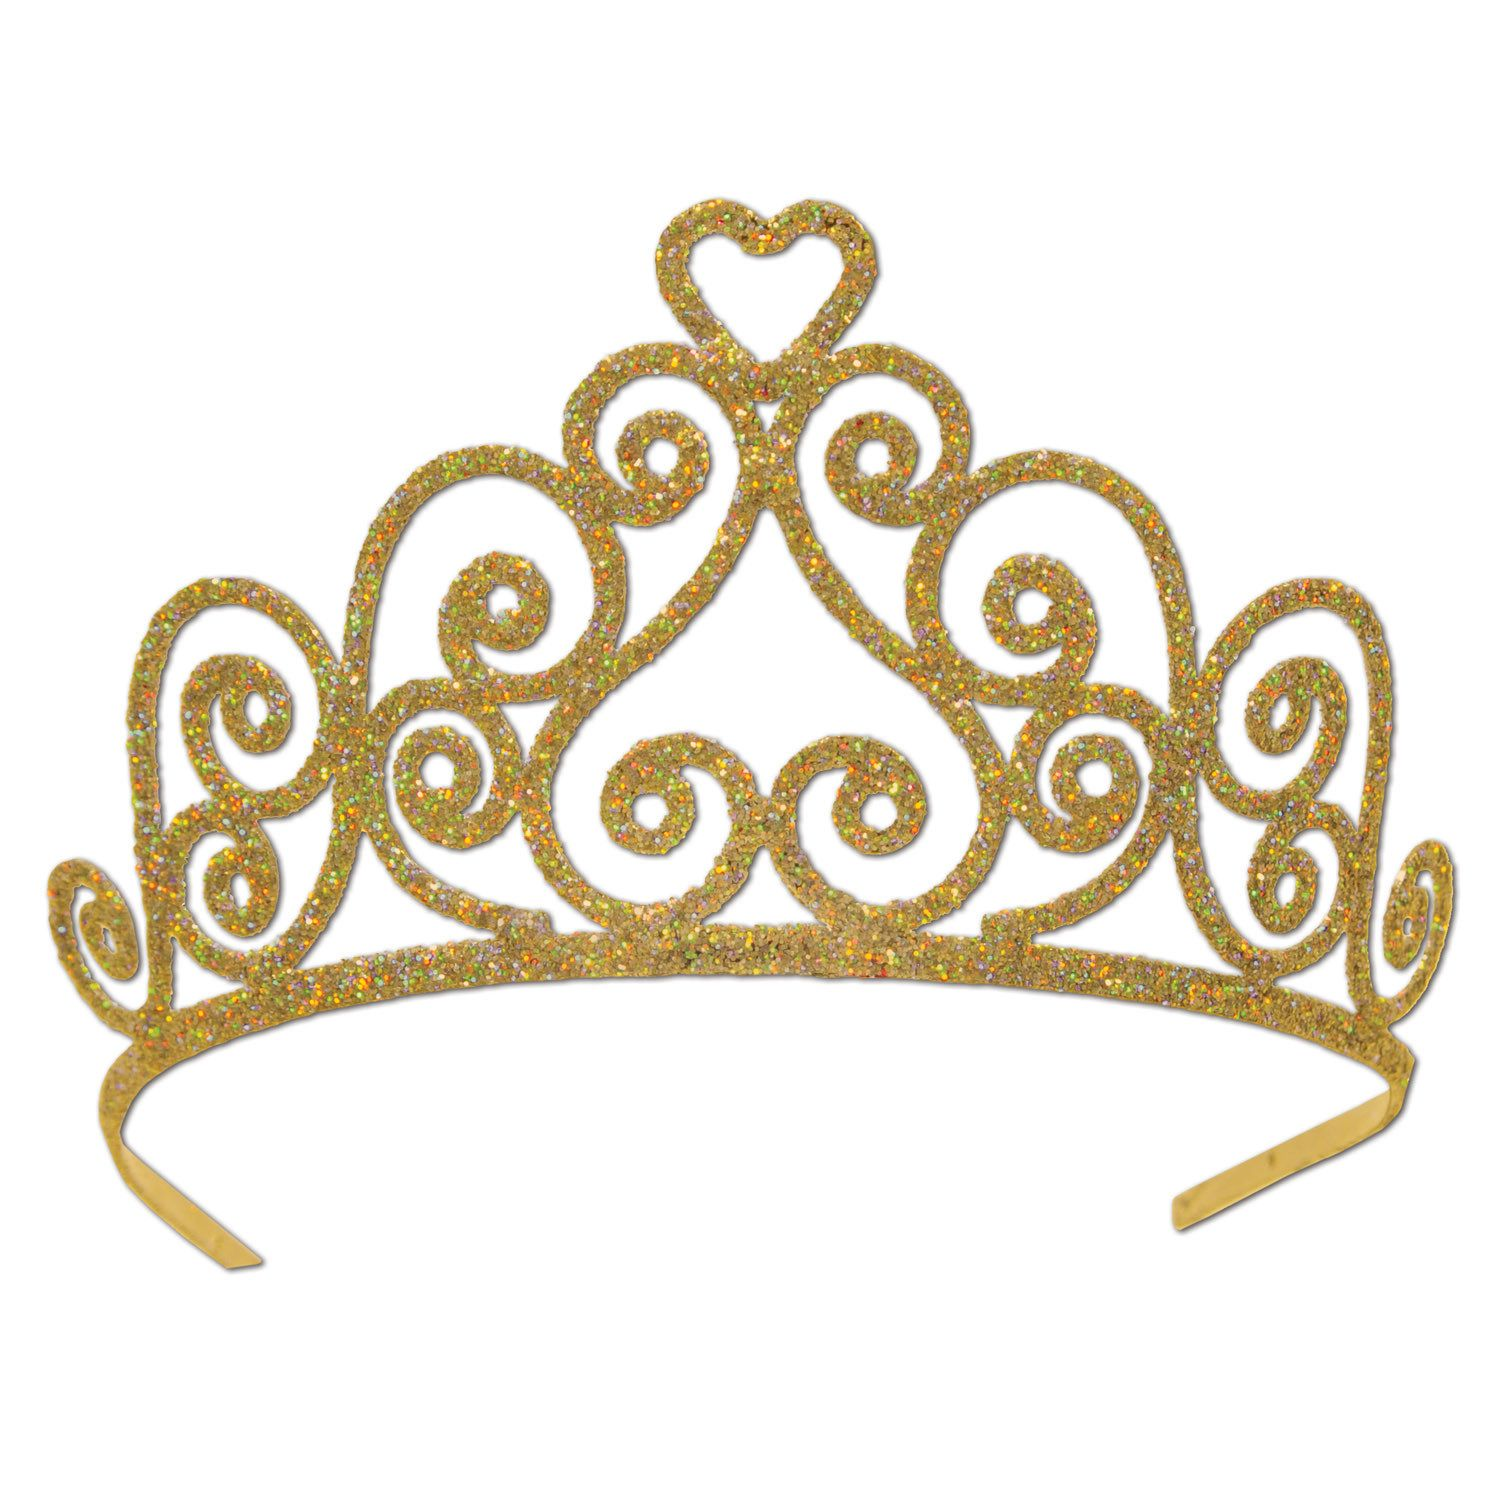 clip transparent library Station . Gold tiara clipart.